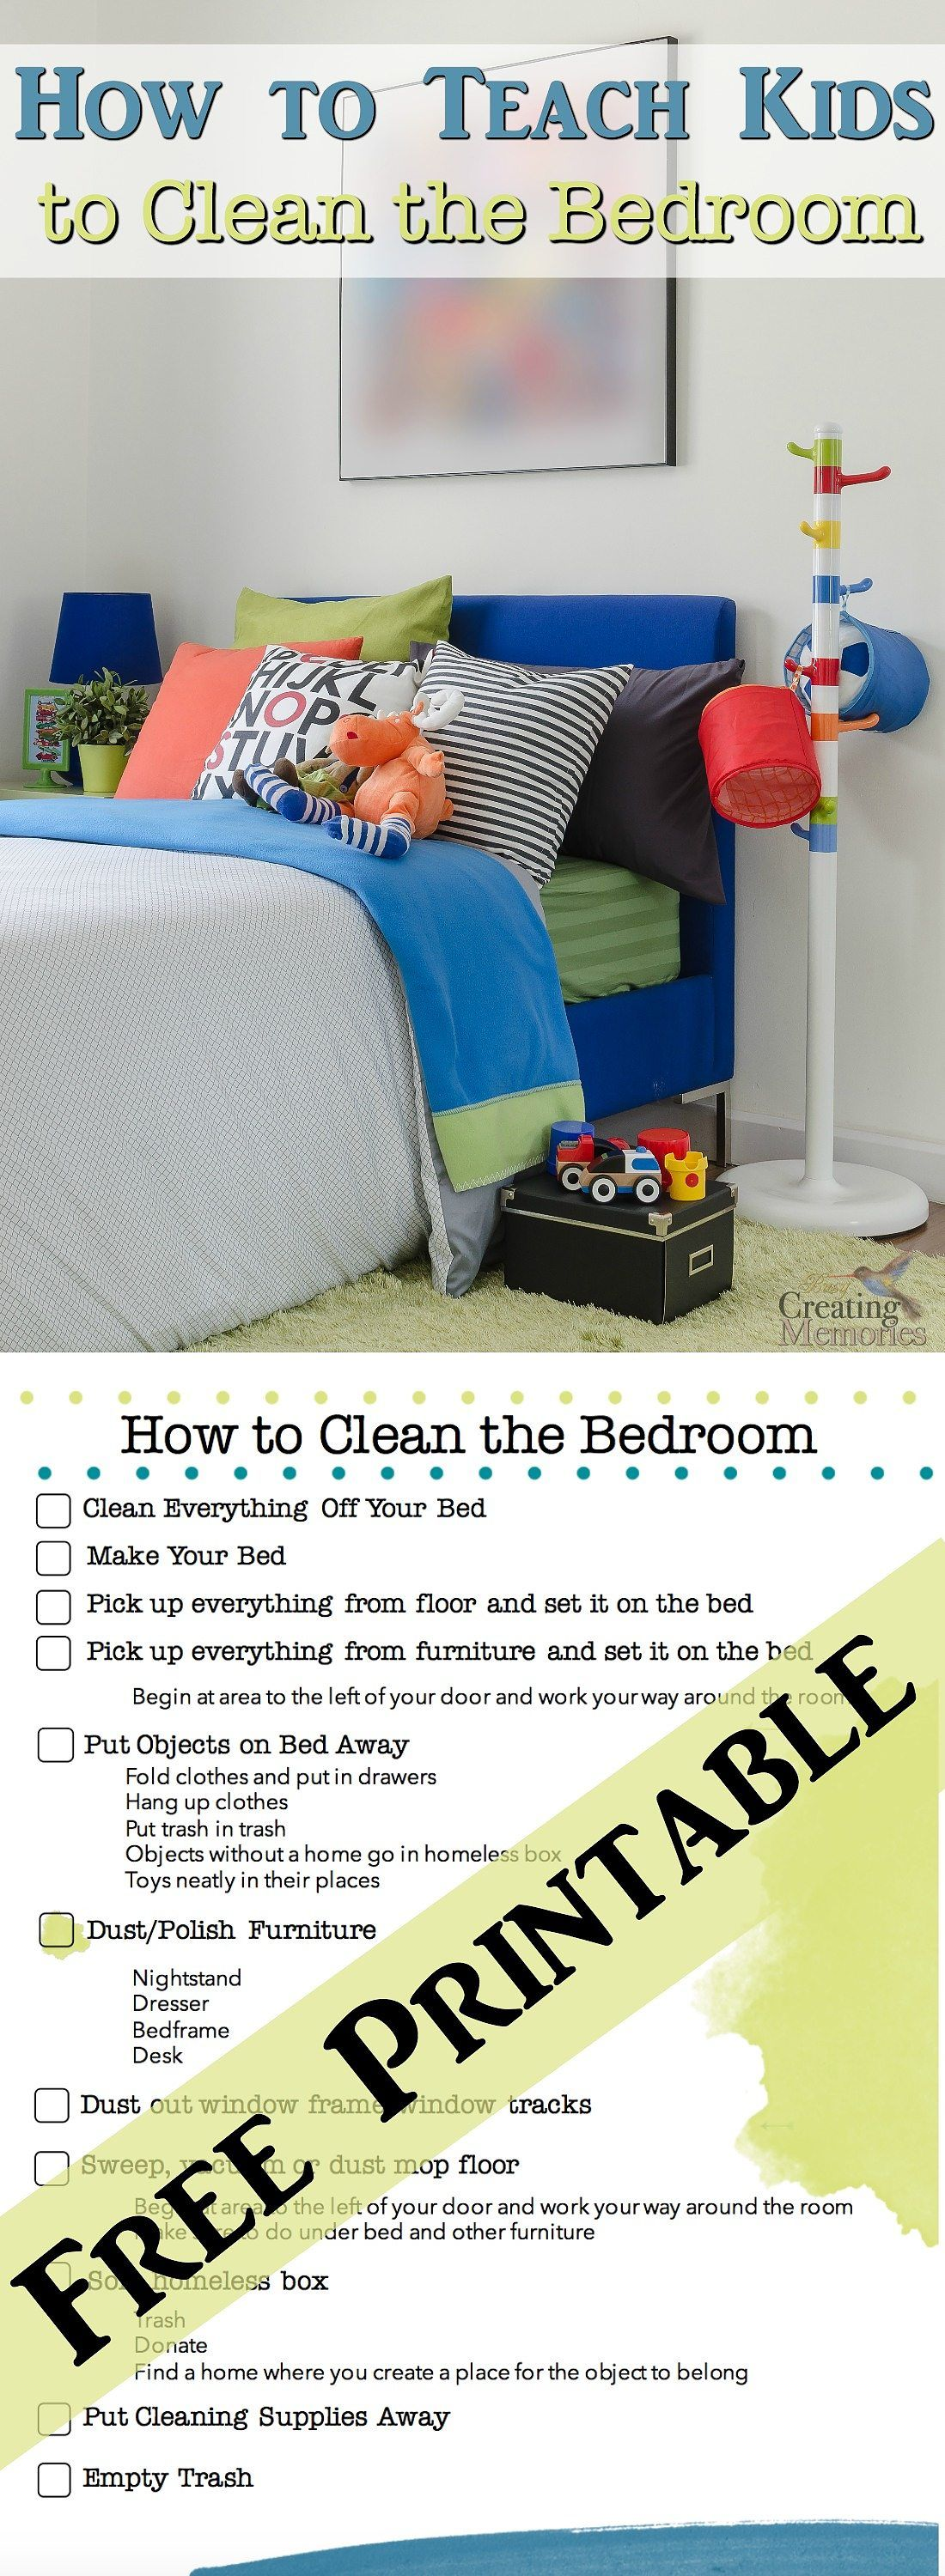 Teach kids to have a clean room bedroom checklist printable cleaning checklist printable How do you clean your bedroom